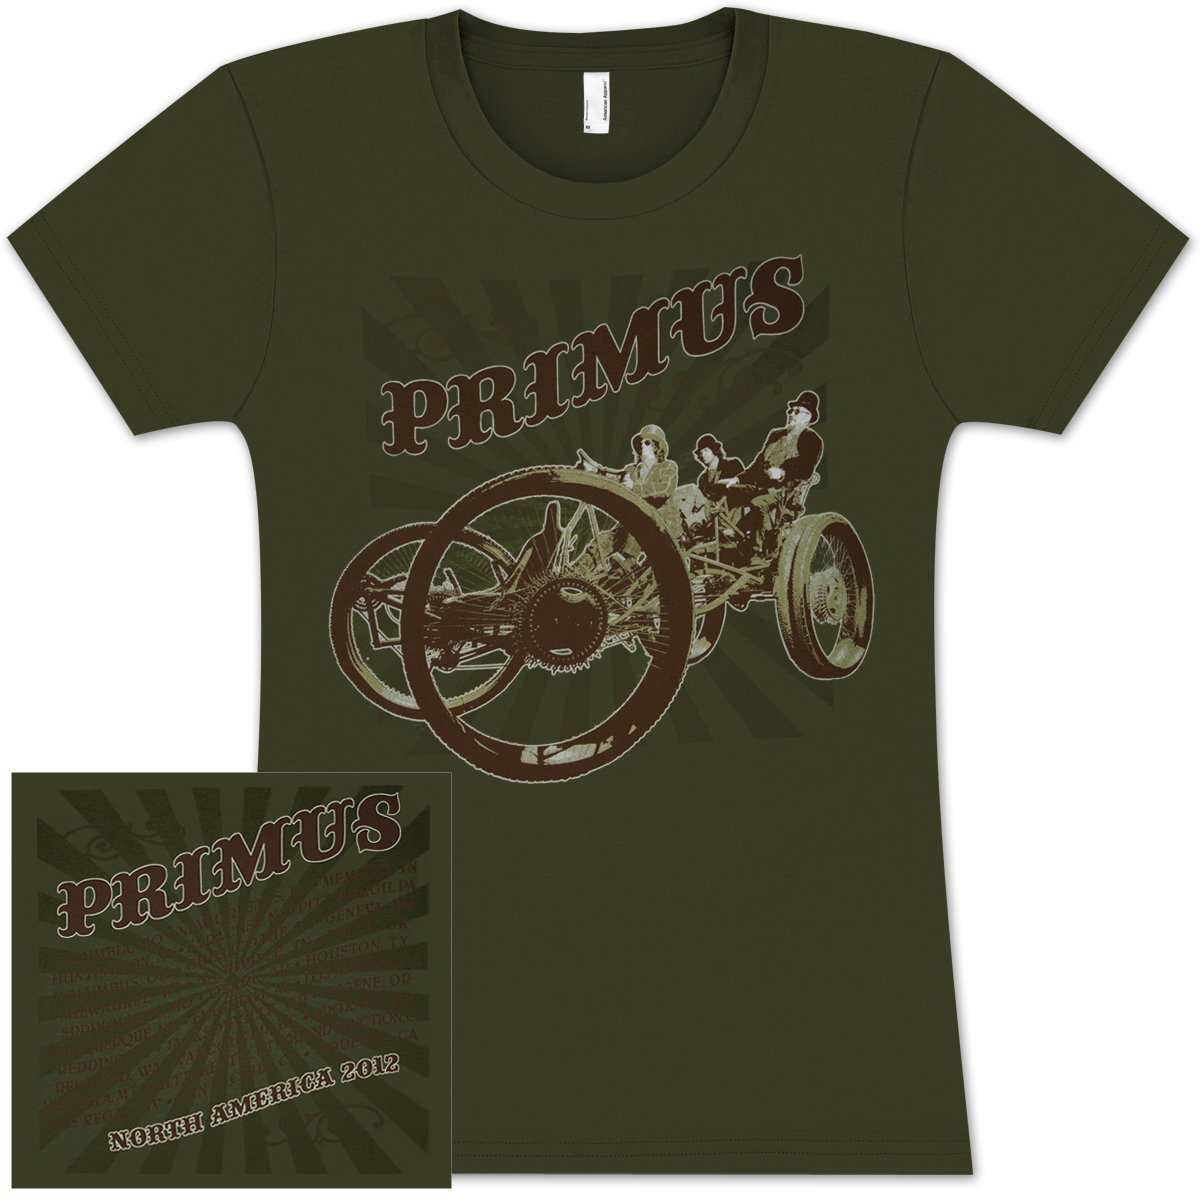 PRIMUS 2012 North American Tour Ladies T-shirt (Spring/Summer Dates)